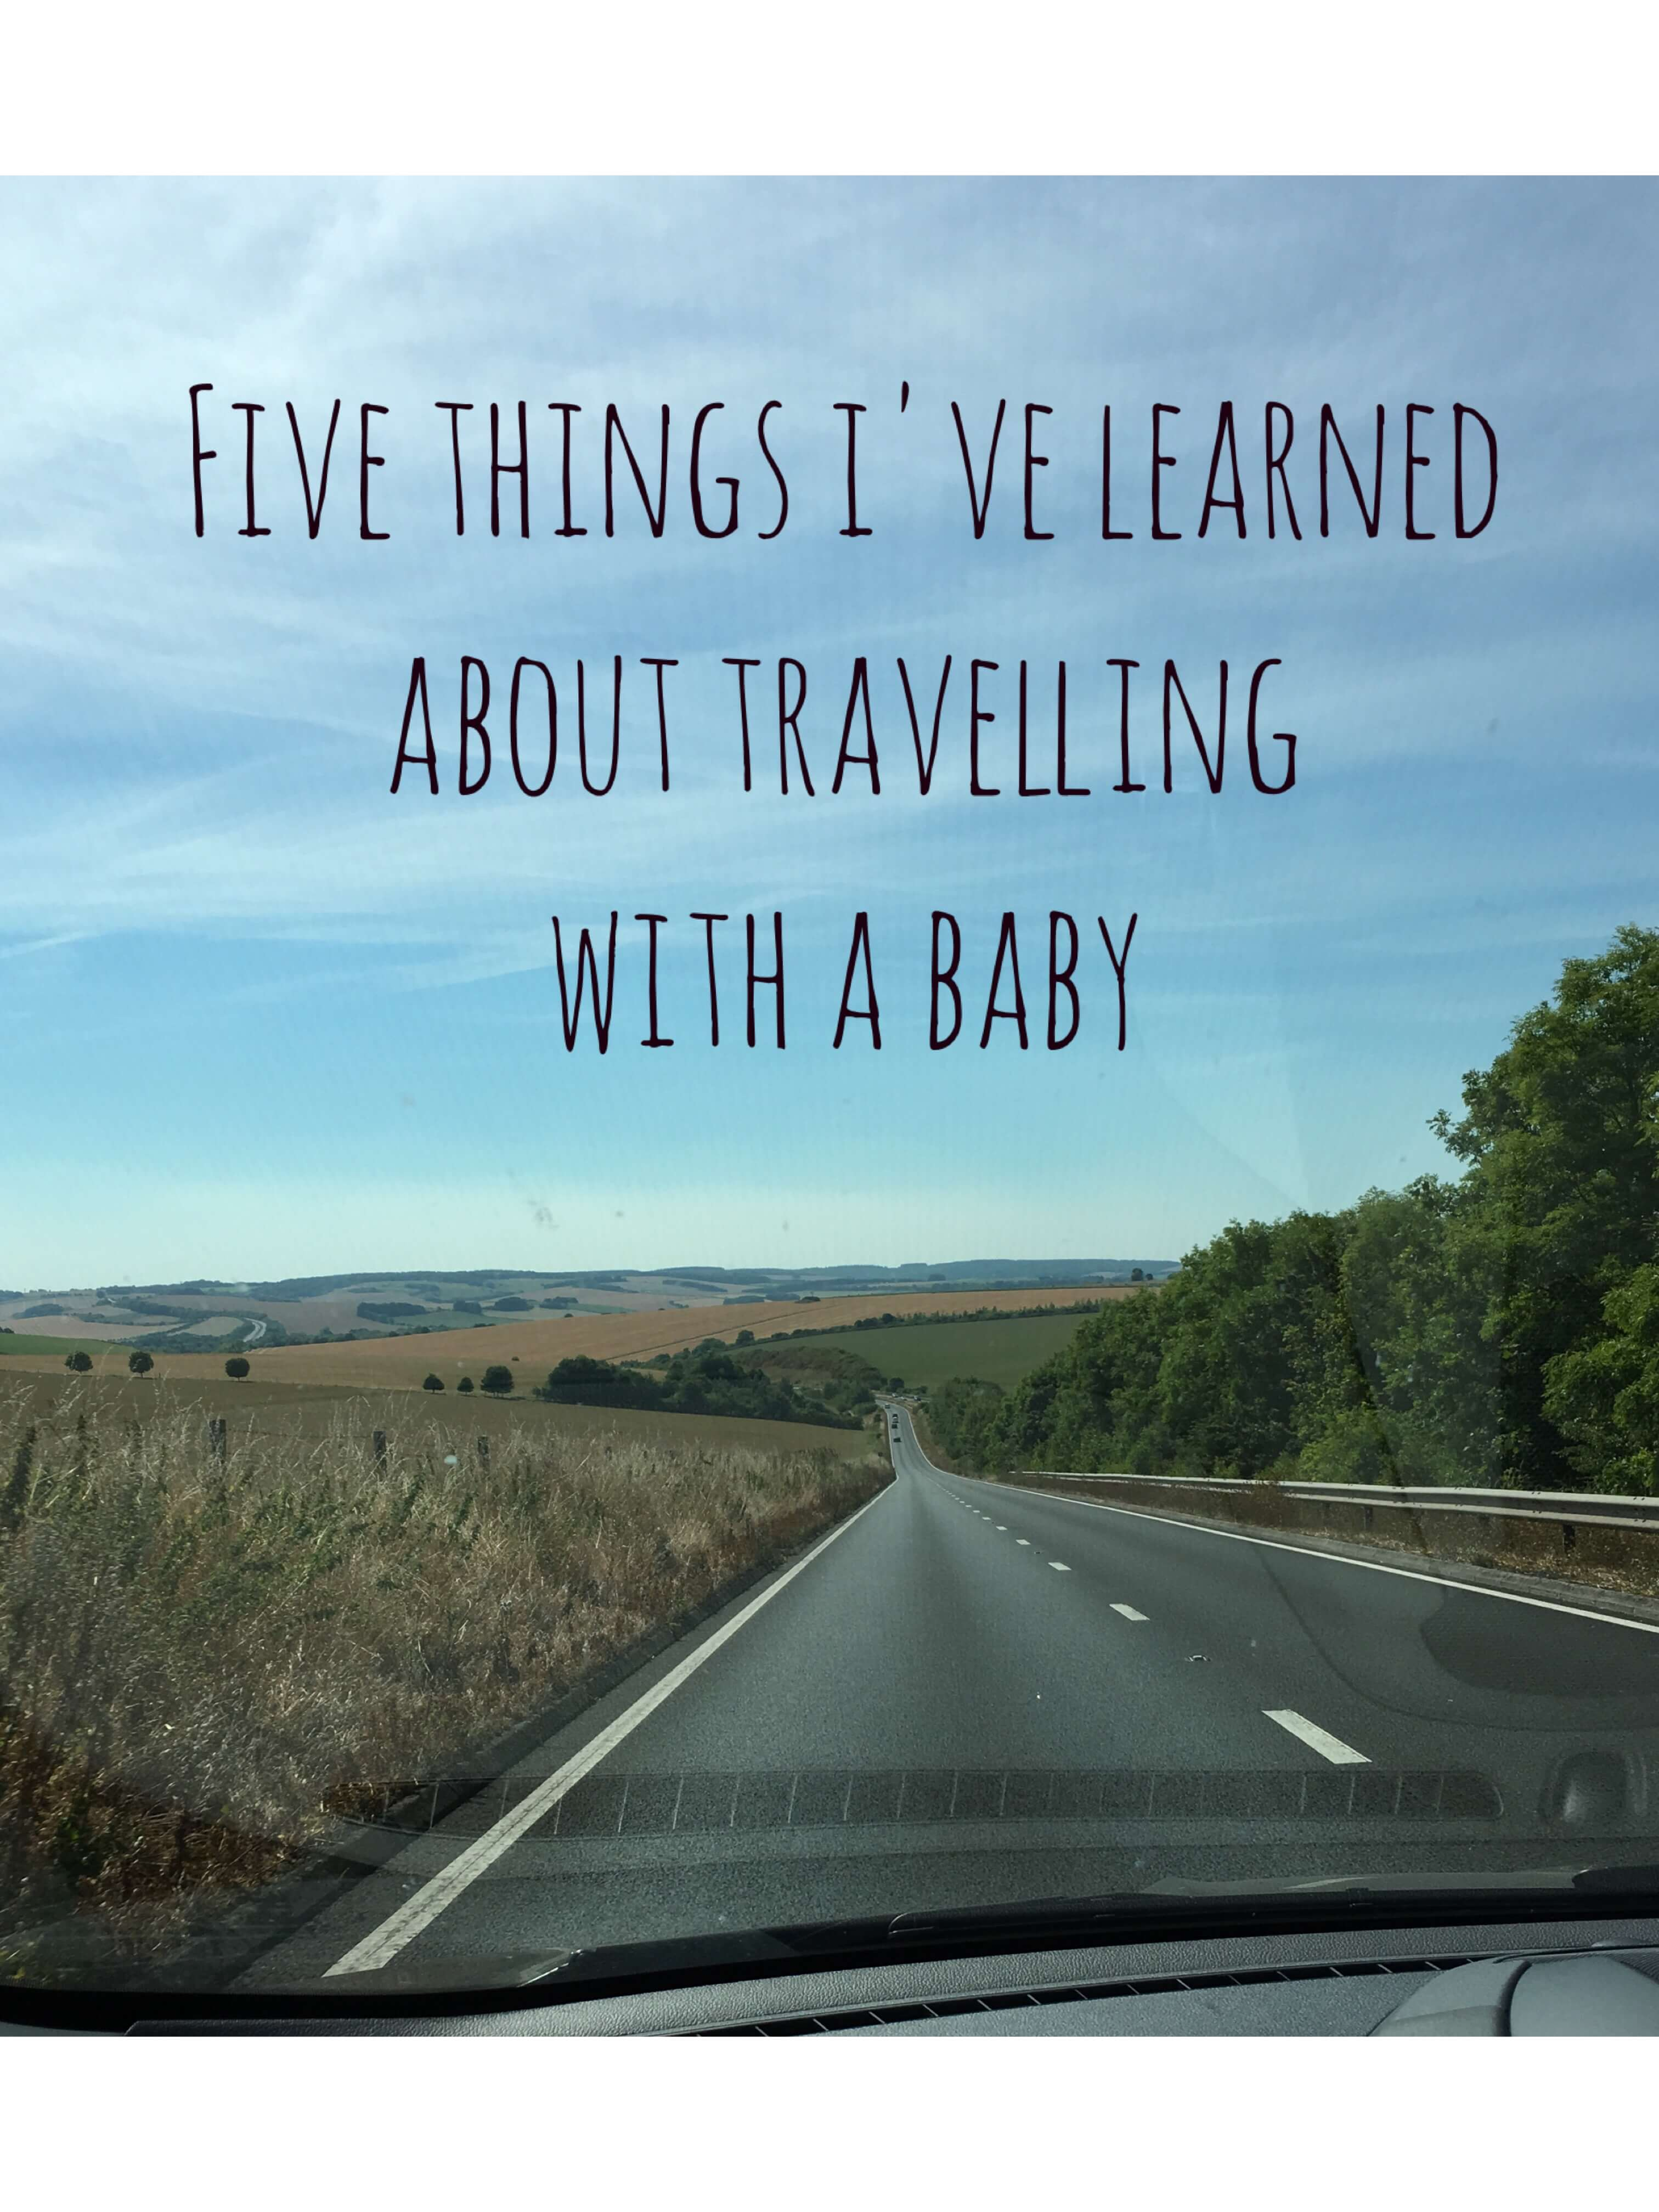 travelling with a baby, car journey with baby, vacation with baby, car journey baby three months